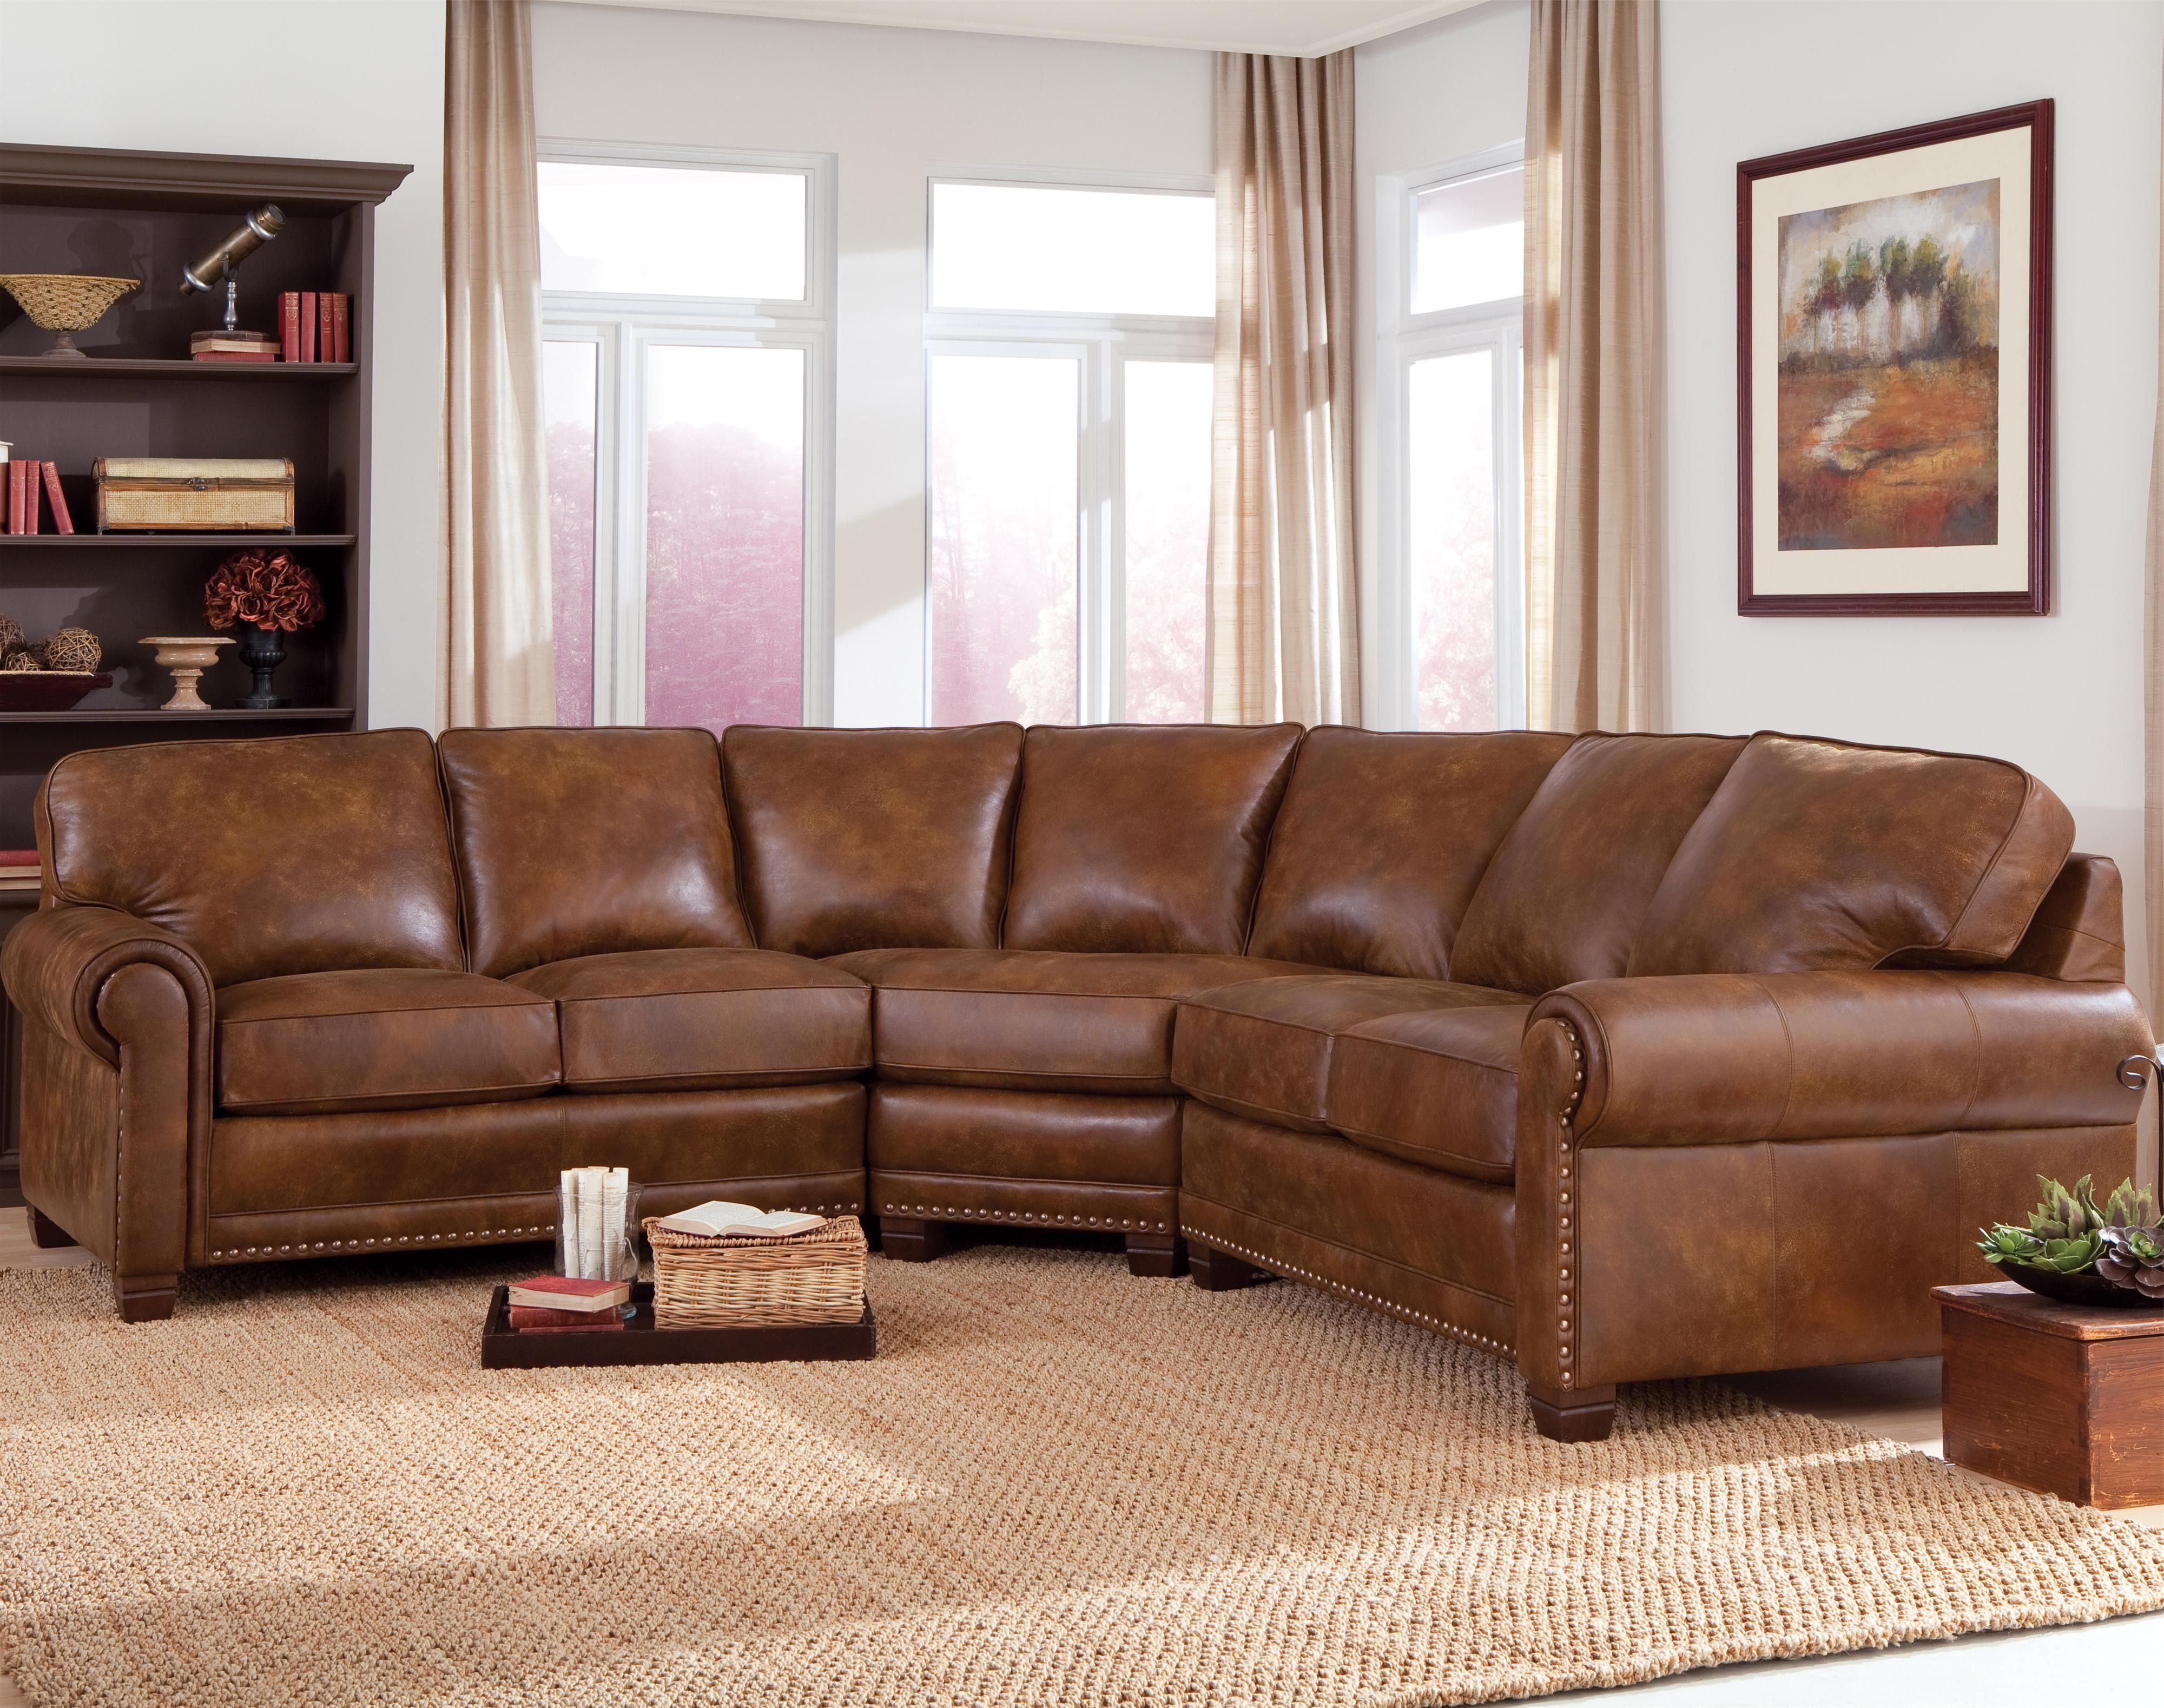 Nice amazing curved leather sectional sofa 16 for home decoration ideas with curved leather sectional sofa